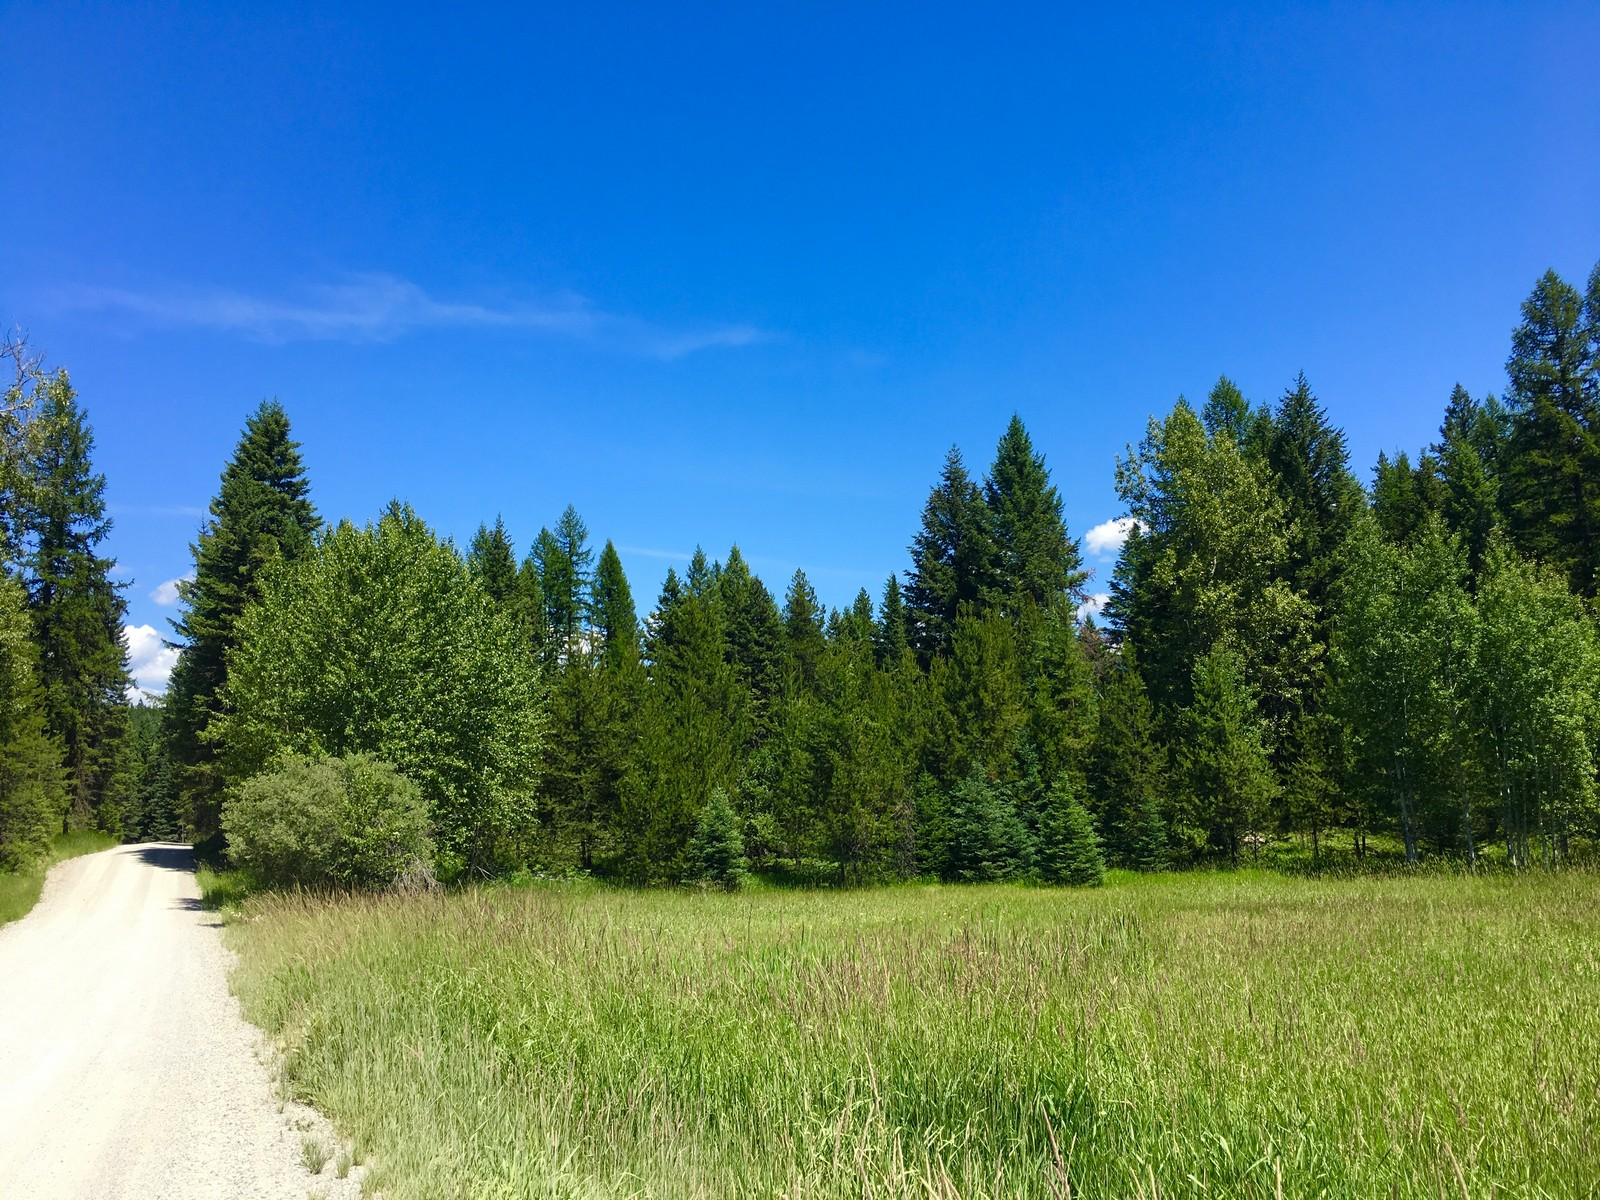 Land for Sale at 146 Lupfer Meadows Pl , Whitefish, MT 59937 146 Lupfer Meadows Pl Whitefish, Montana 59937 United States